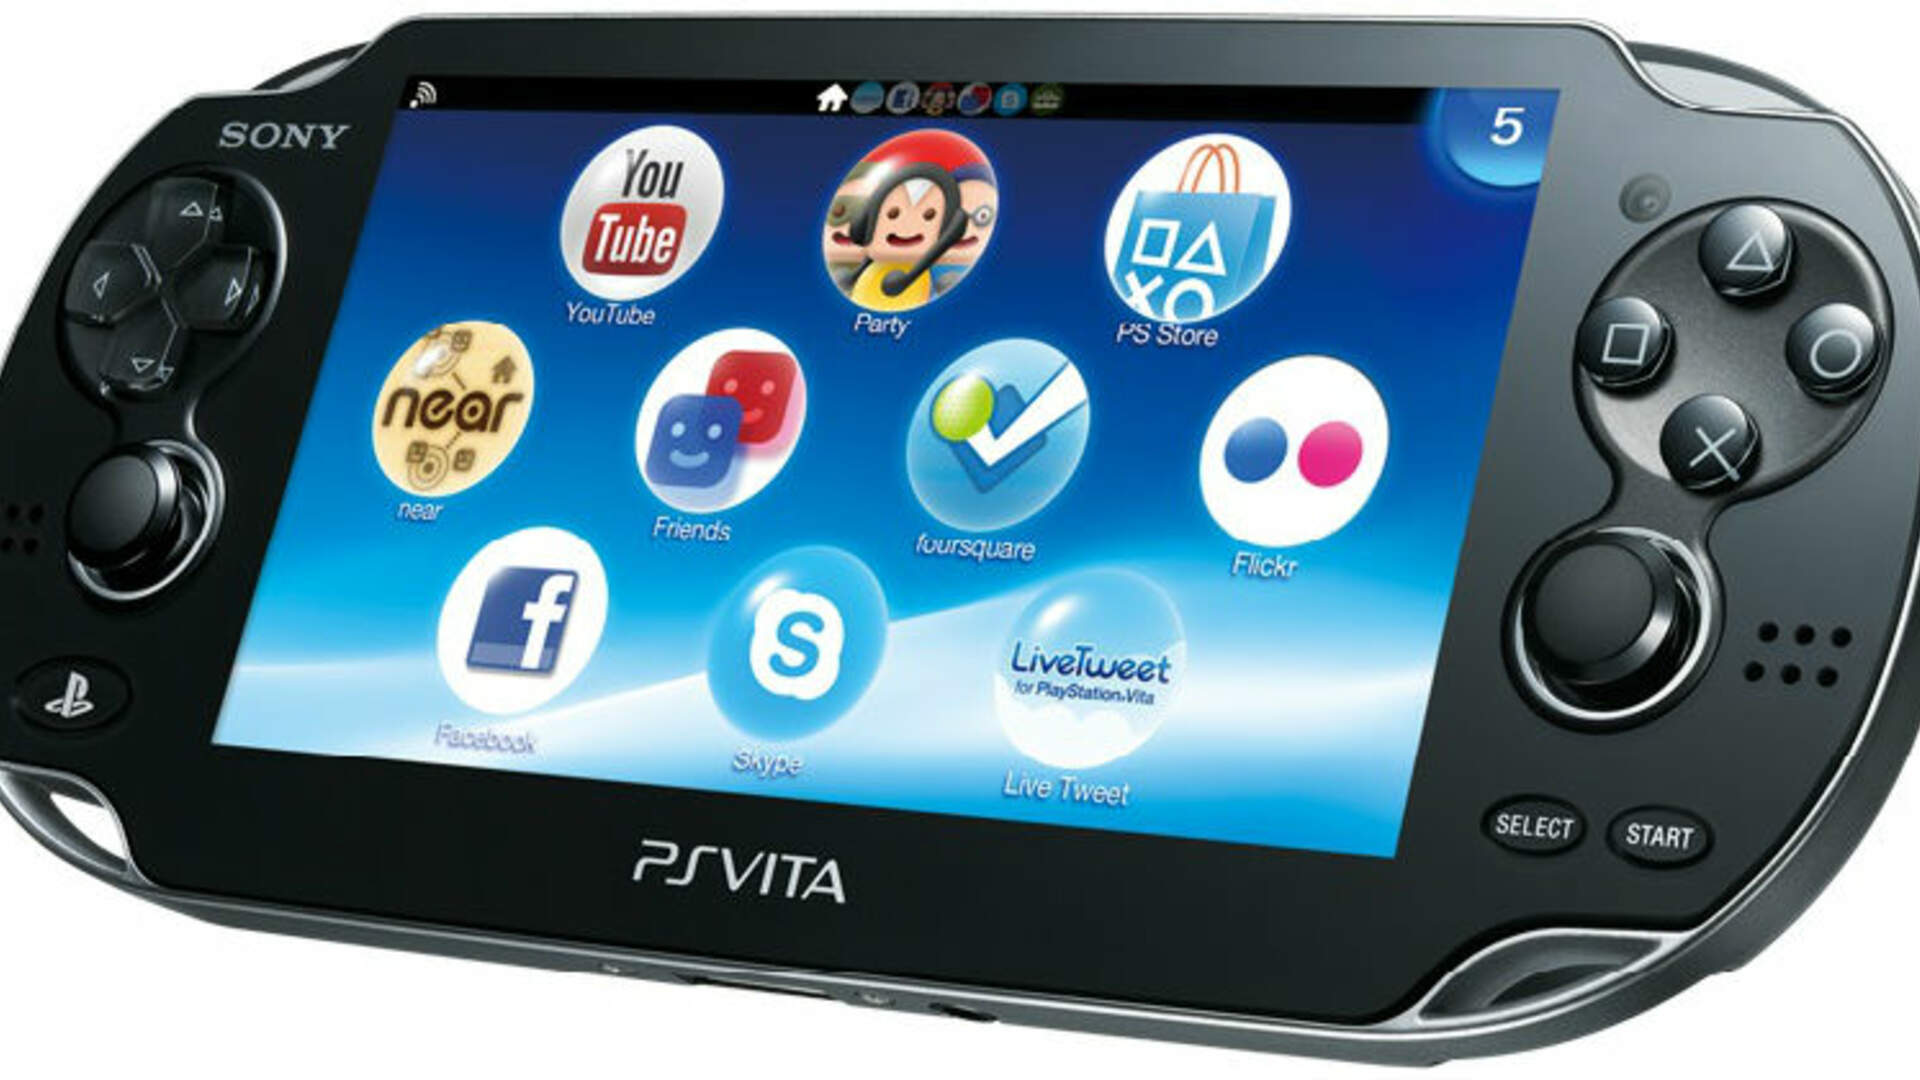 Report: Sony Will Stop Making Physical PS Vita Games